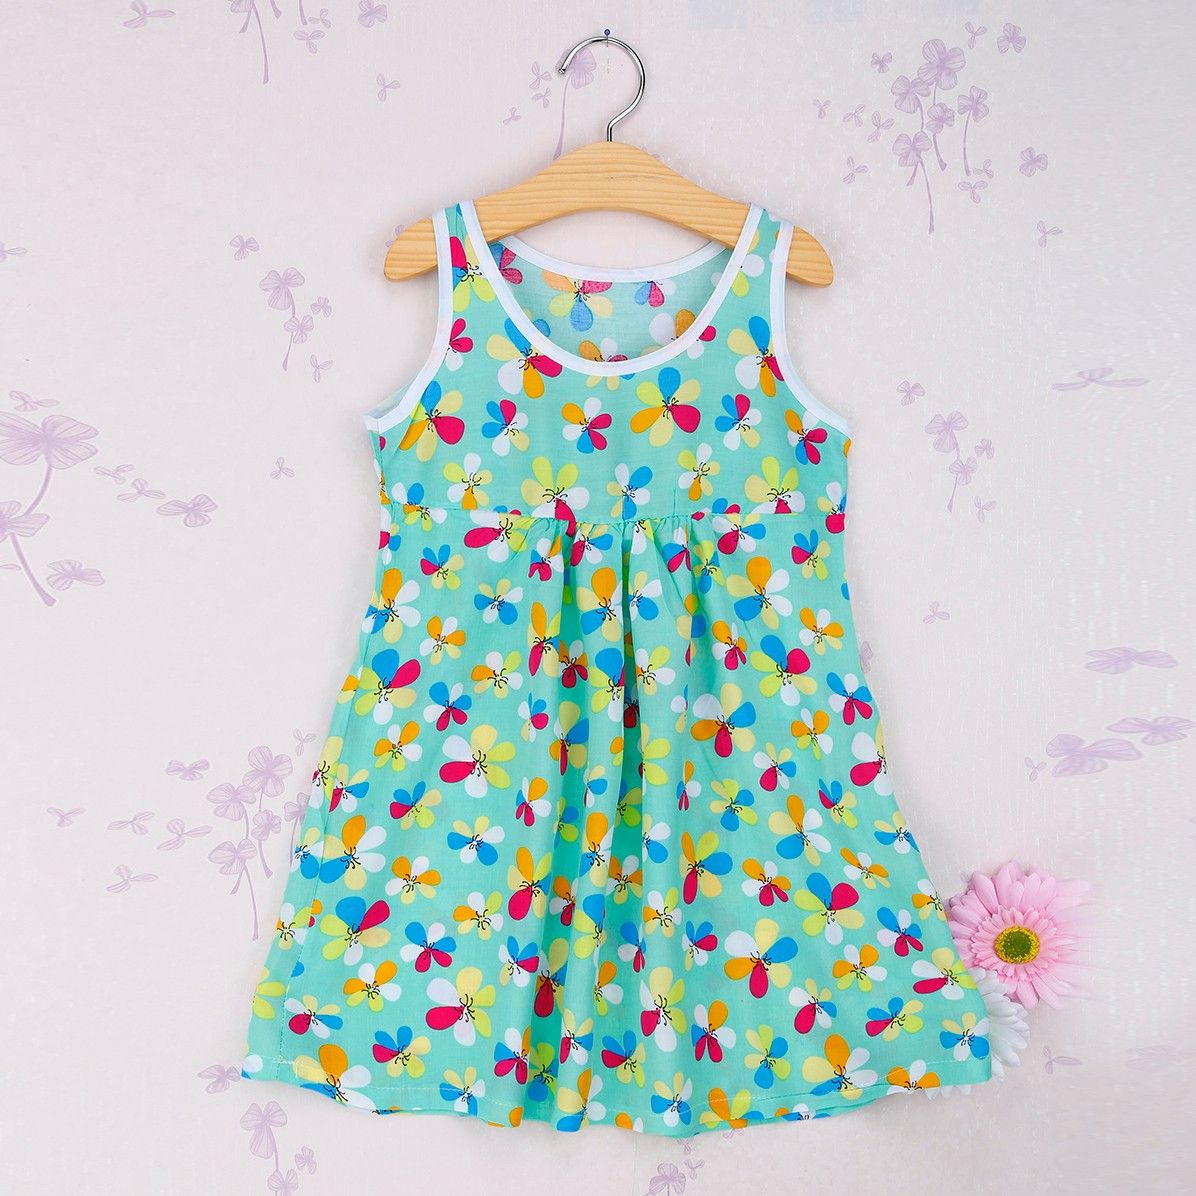 Green Multi Floral Print Dress - Snuggle Bunny